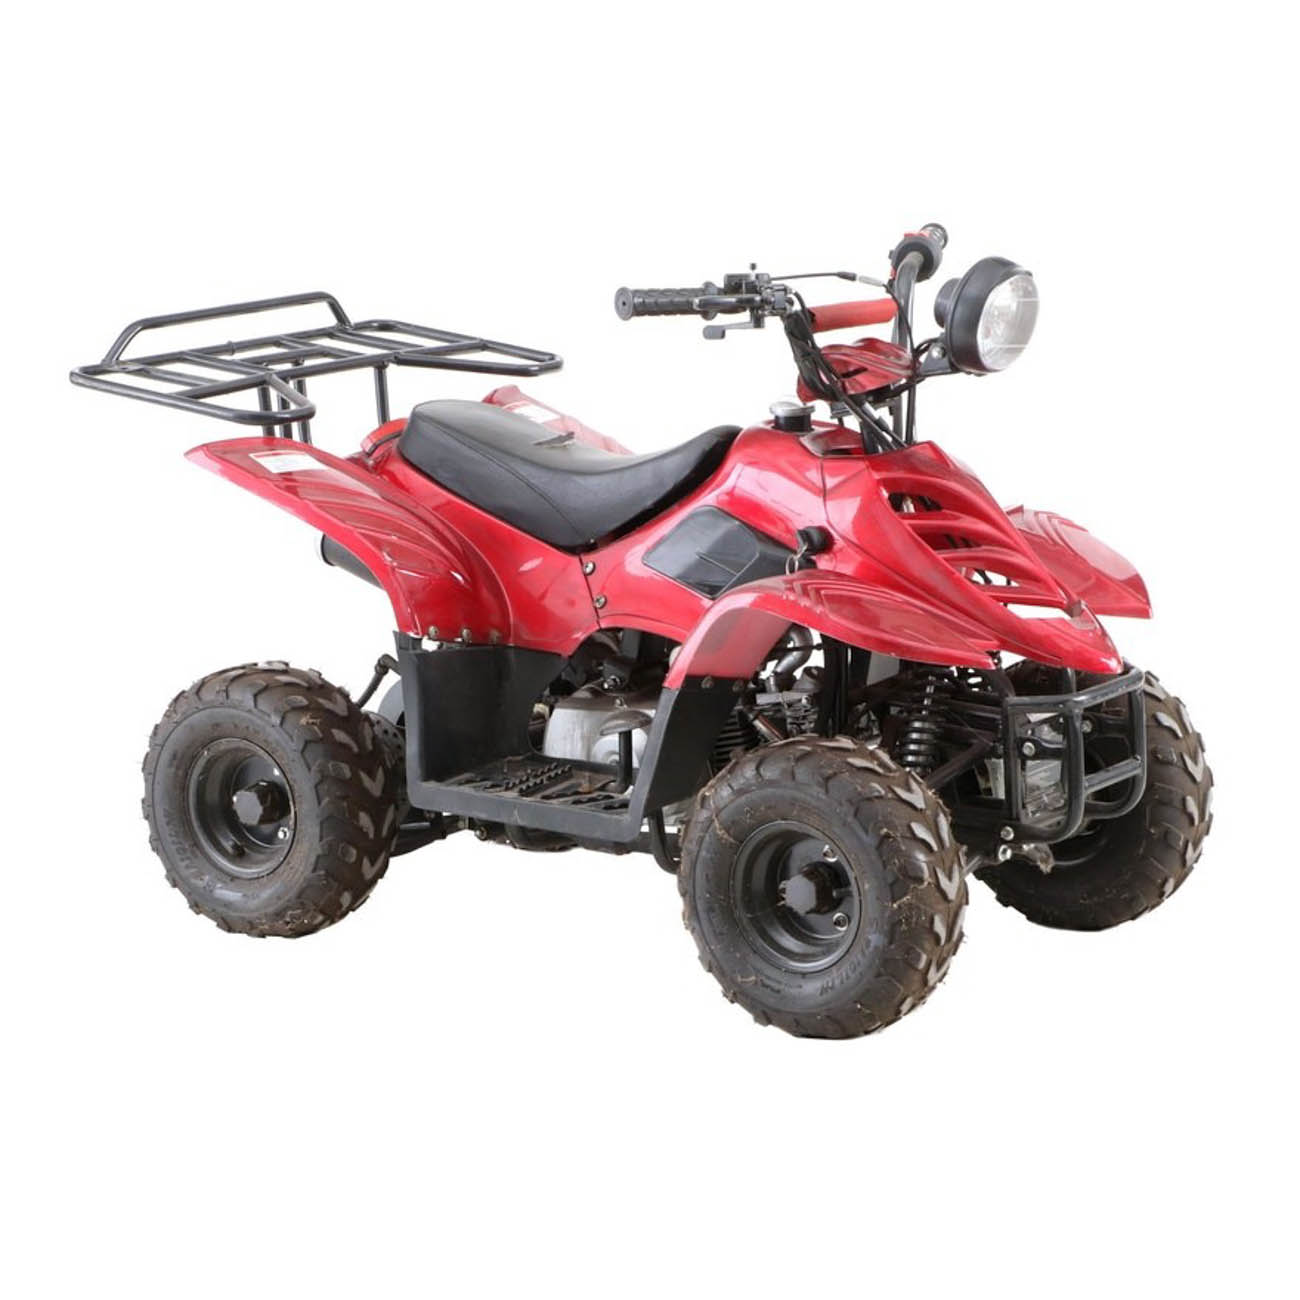 This small all-terrain vehicle was driven by the Reds mascots. It is 32.5 inches high and 51 inches long. / Image courtesy of Everything But The House (EBTH) // Published: 12.6.18